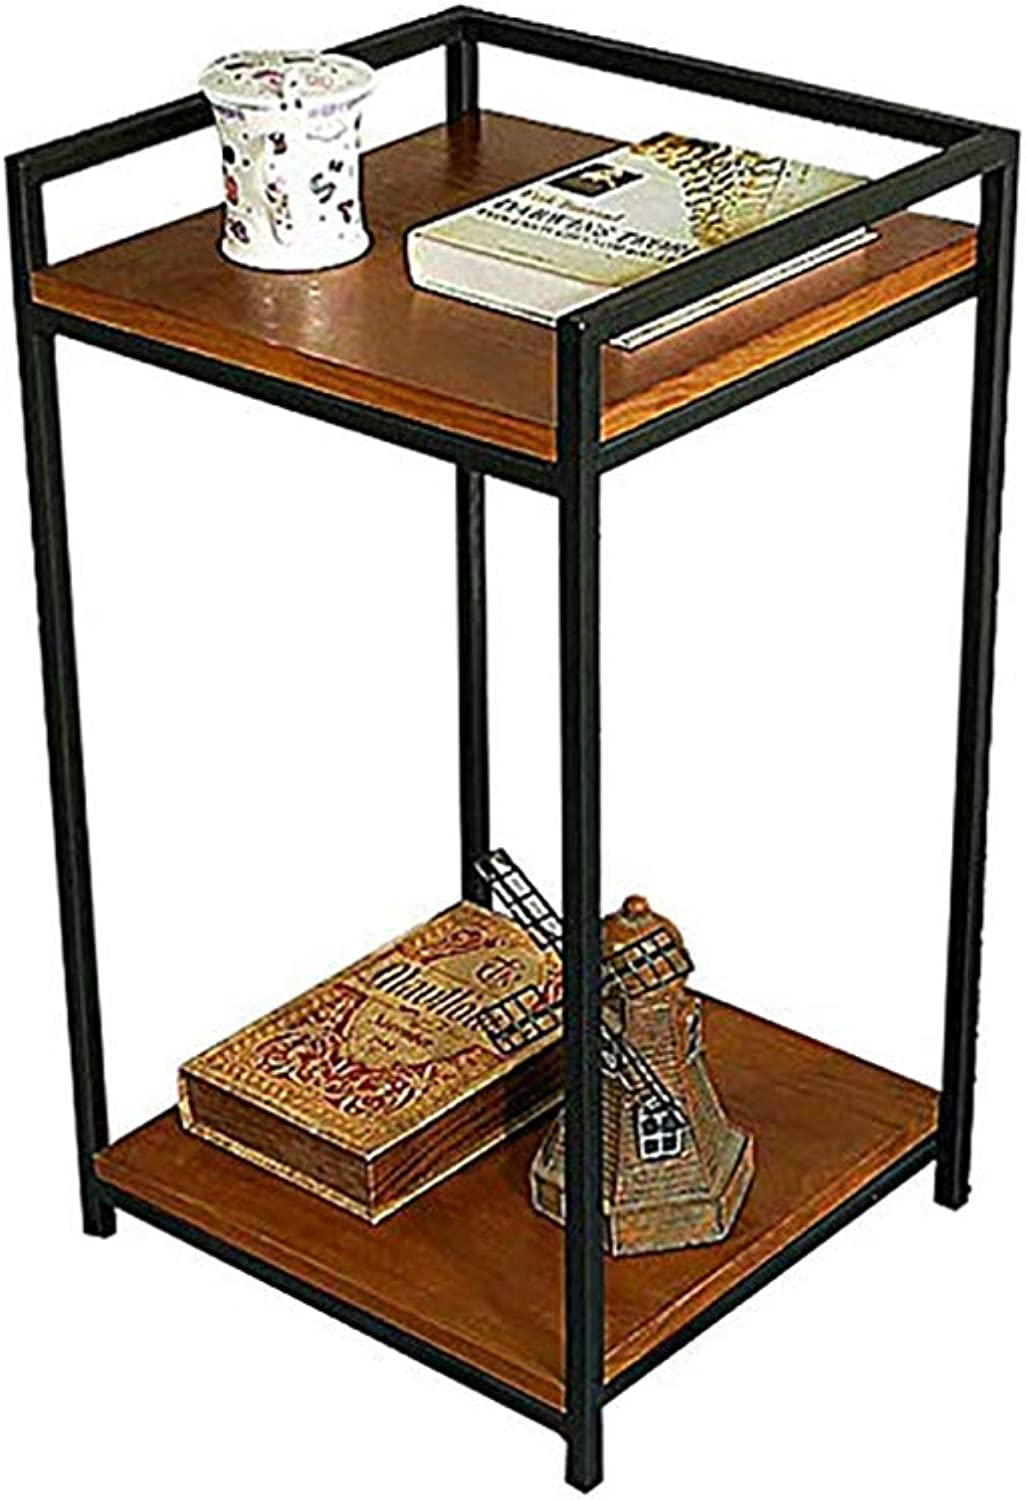 2-Tier Wooden End Table, Side Table, Coffee Table,Snack Storage Table with Metal Frame for Living Room, Bedroom, Balcony